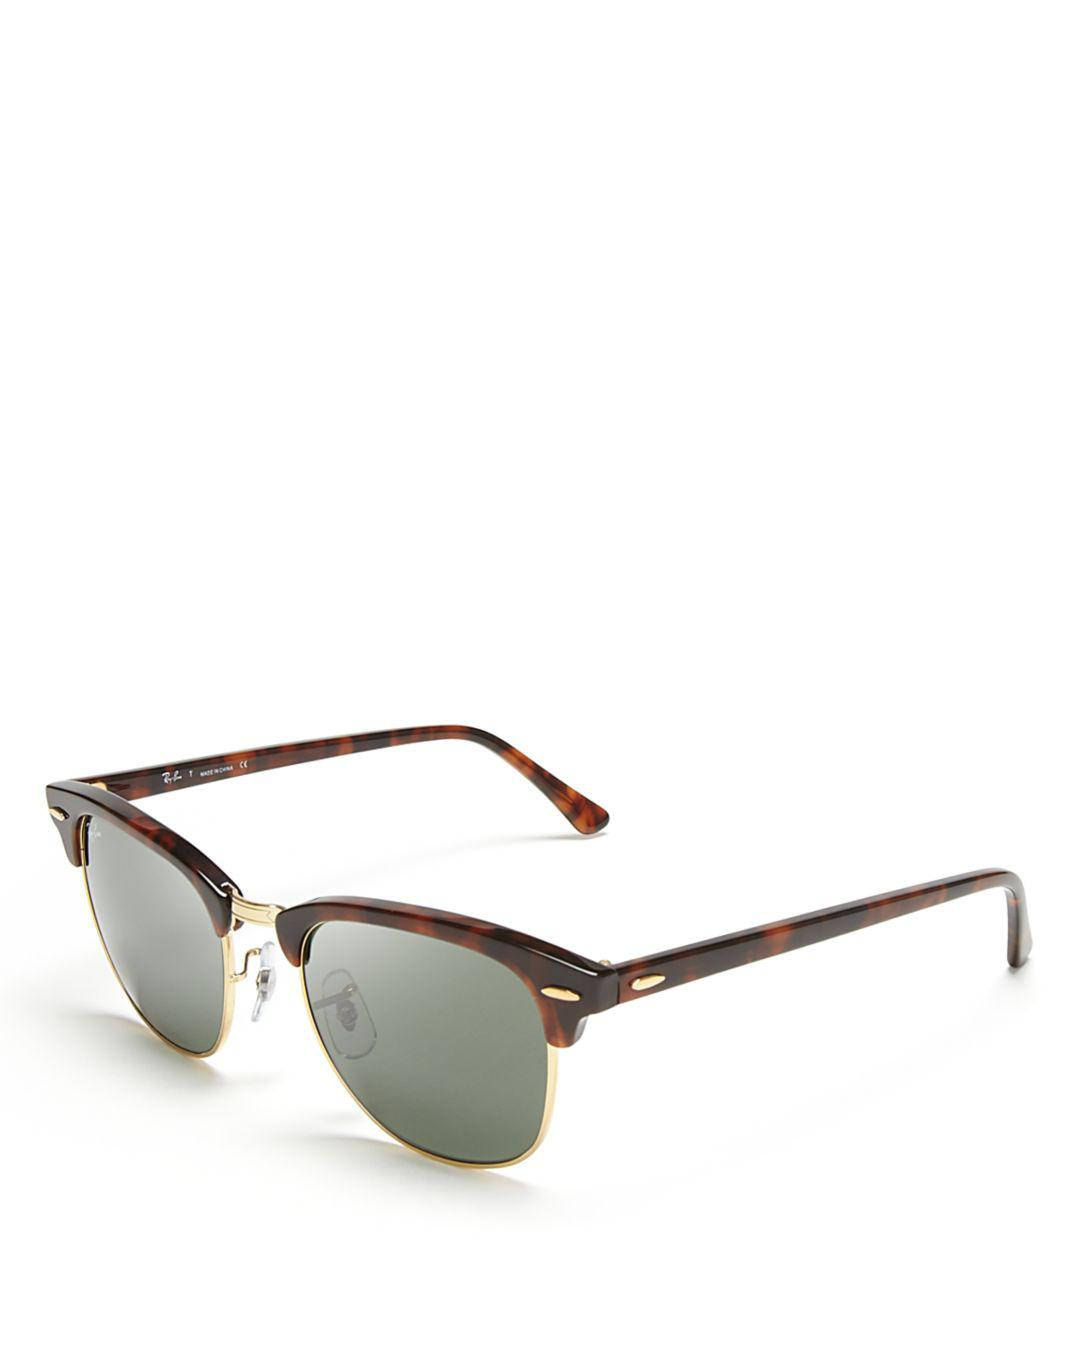 15d36640be Lyst - Ray-Ban Classic Clubmaster Sunglasses in Black - Save 2%